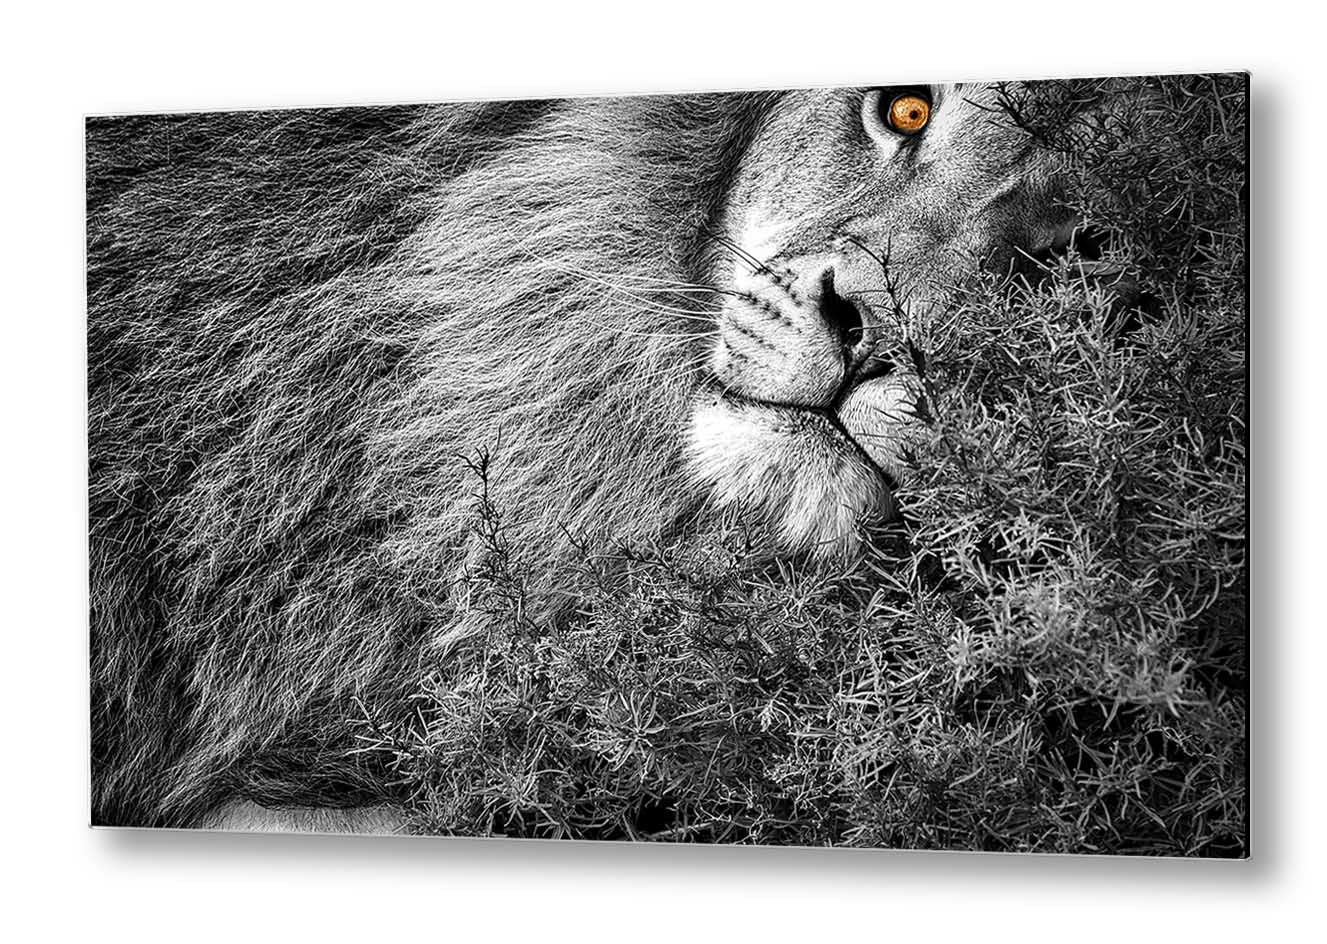 The Kings Nap | Photo Art | Black & White | Lion | Print on Aluminium Dibond | Special Edition Art Print | Wall Art